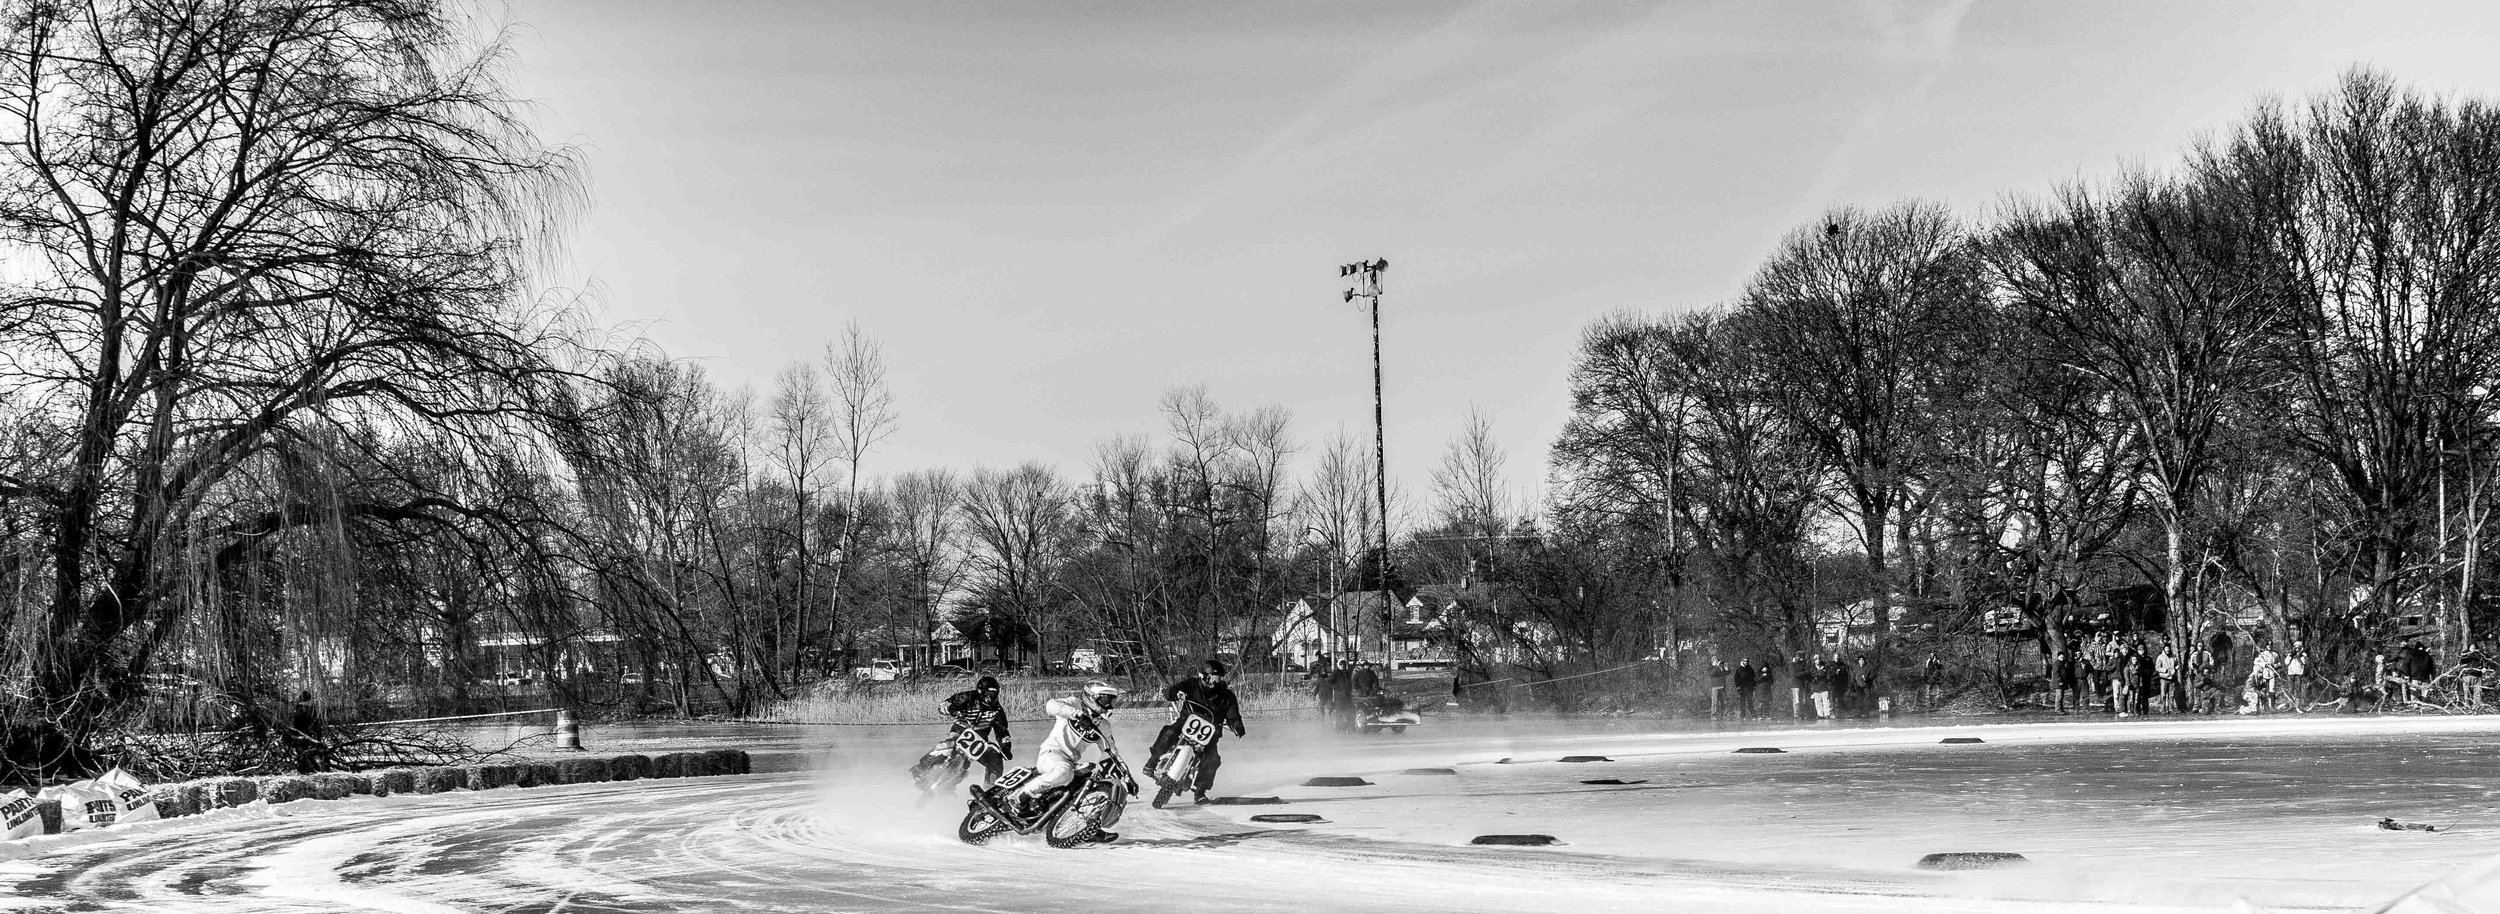 2018 - 01 jan - high voltage ice races - for web-23.jpg